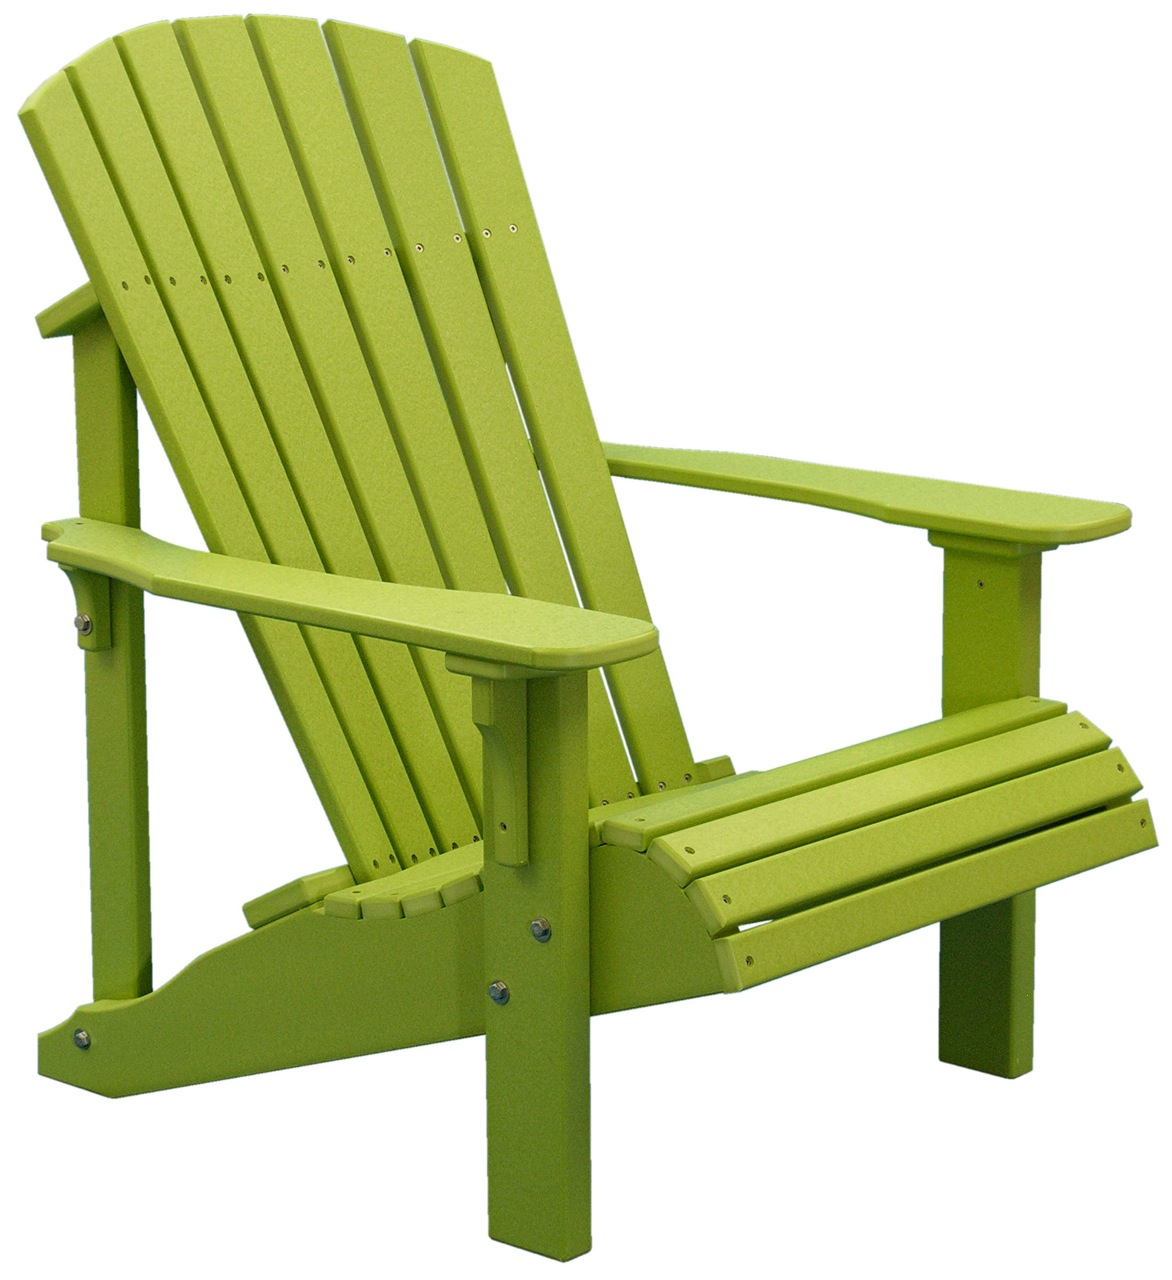 polywood adirondack chairs deluxe adirondack chair, polywood nufrovx